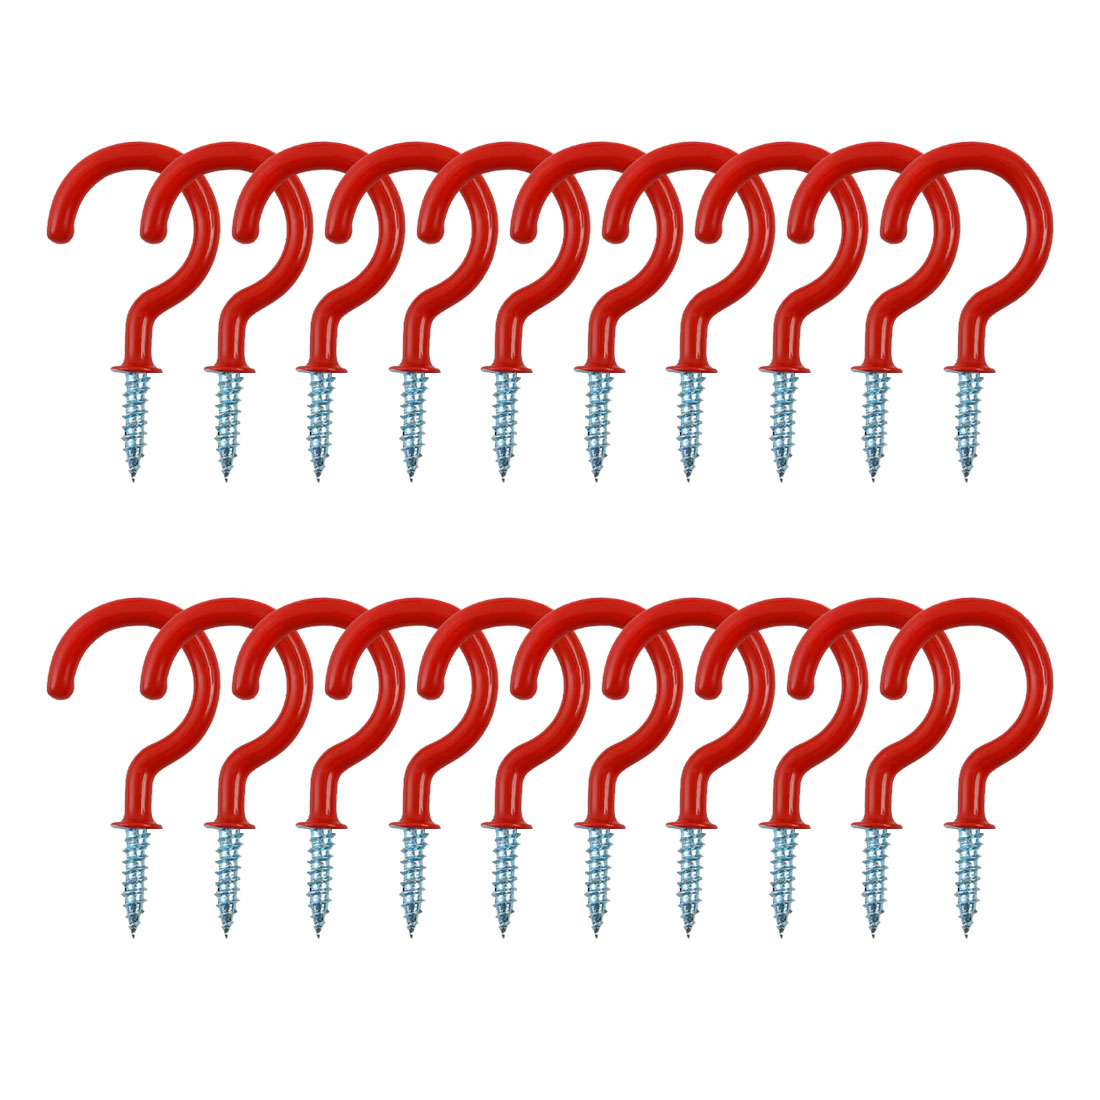 20pcs Cup Hooks 7/8 Inch Metal with Vinyl Coated Holder Screw in Hanger Red